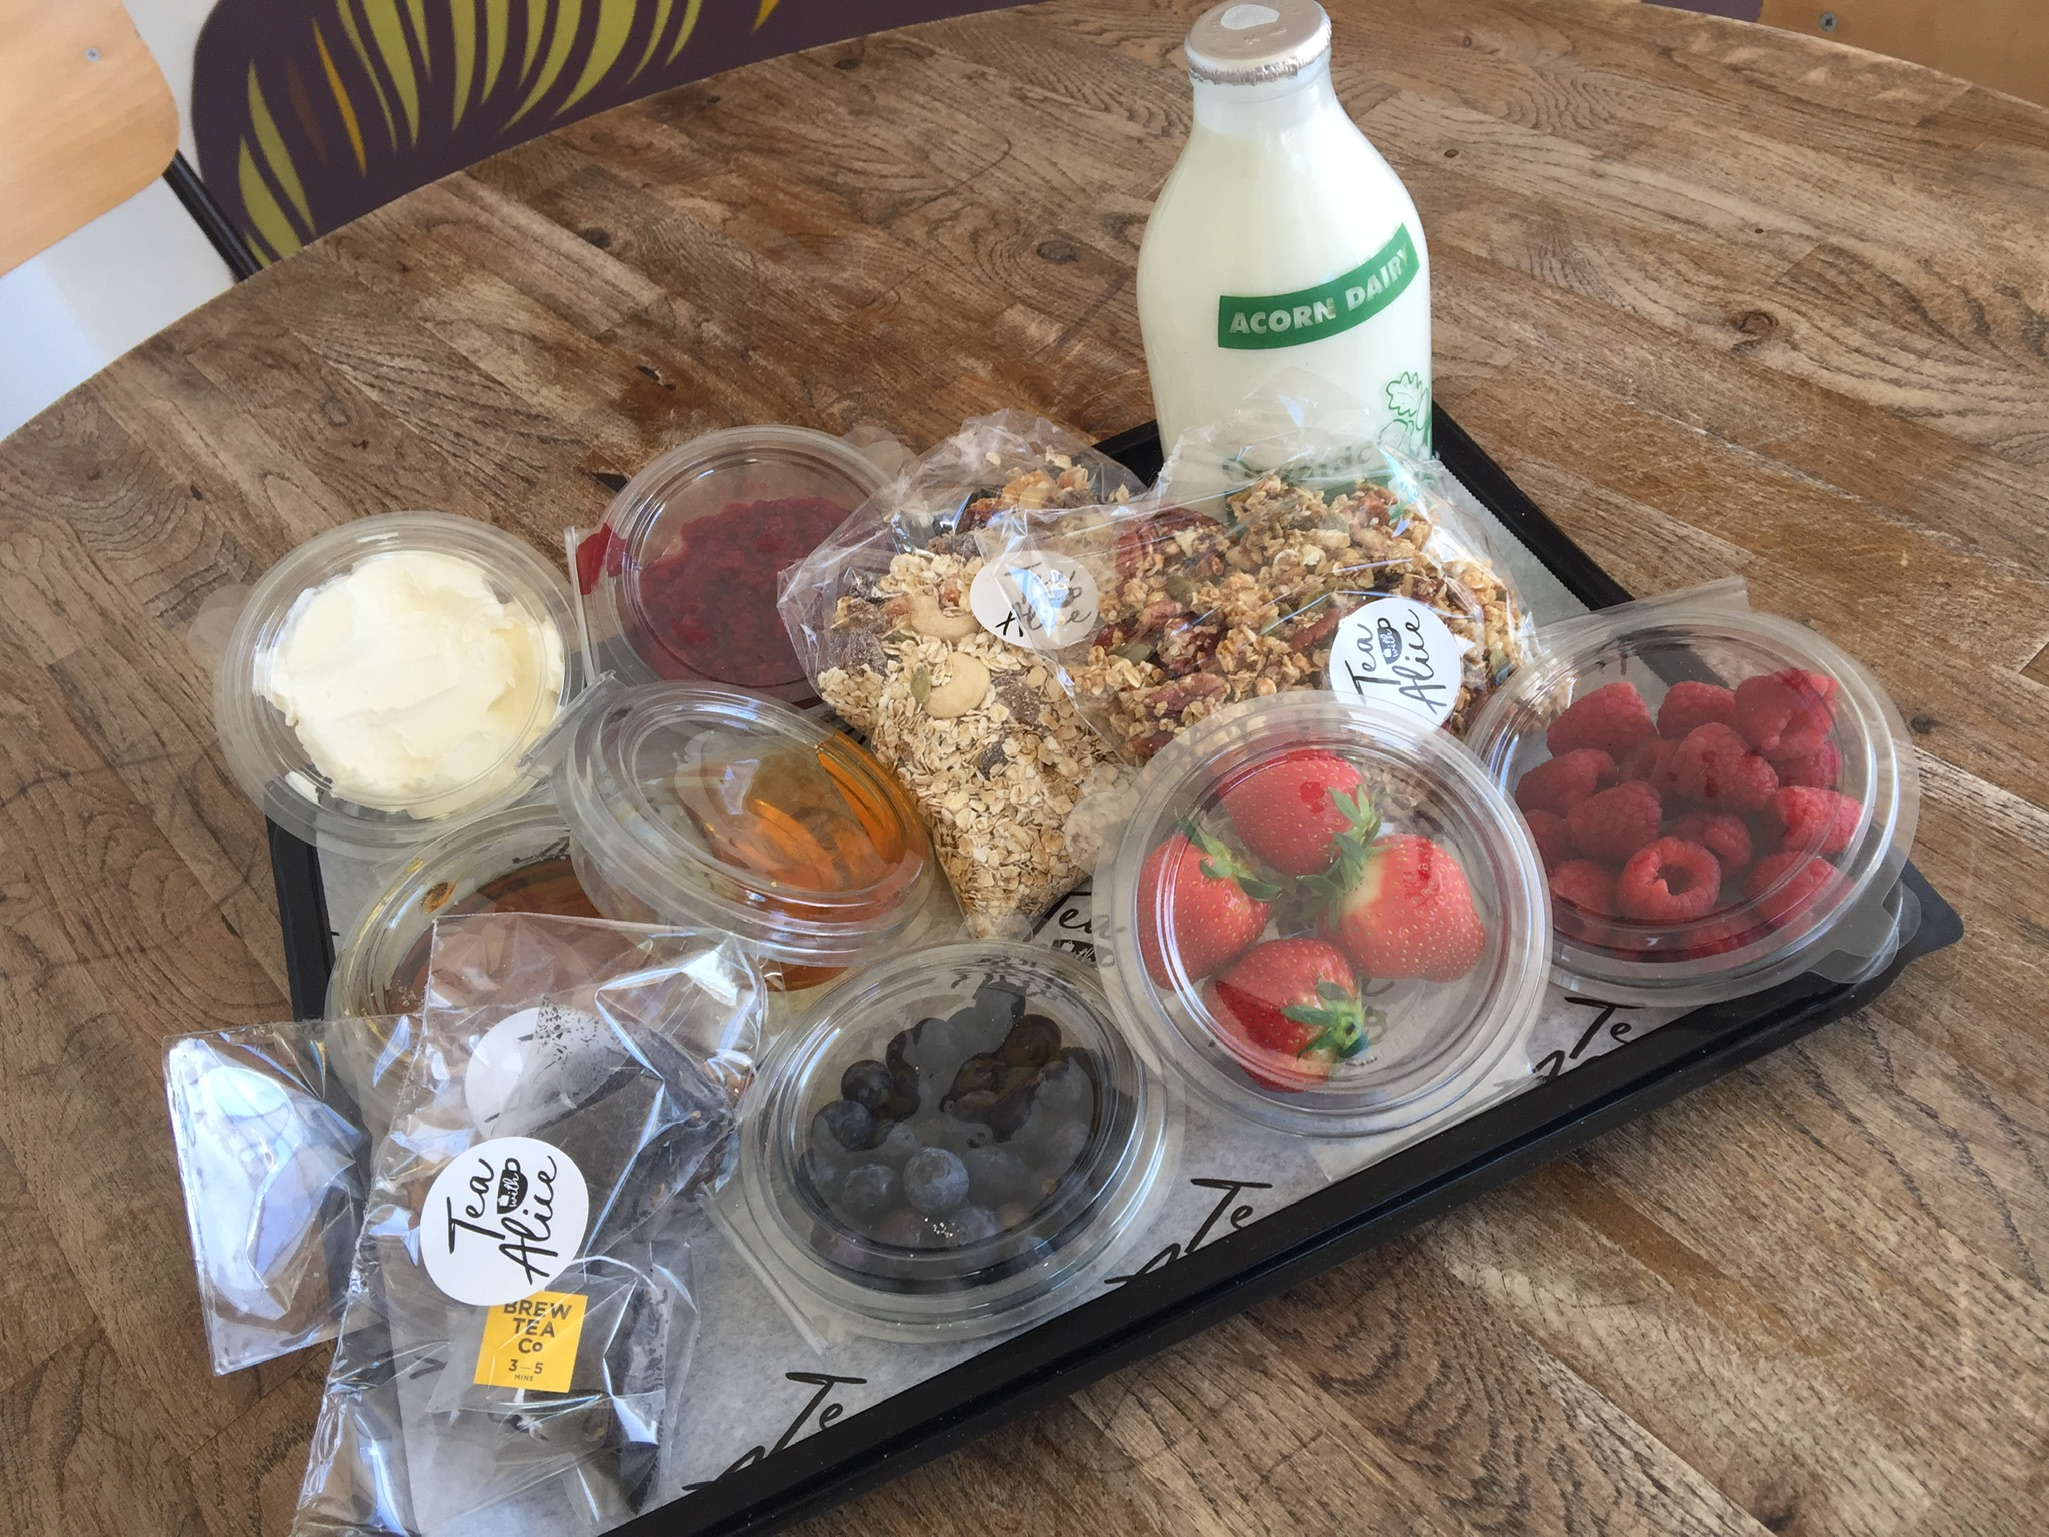 TWA Breakfast Club Hamper